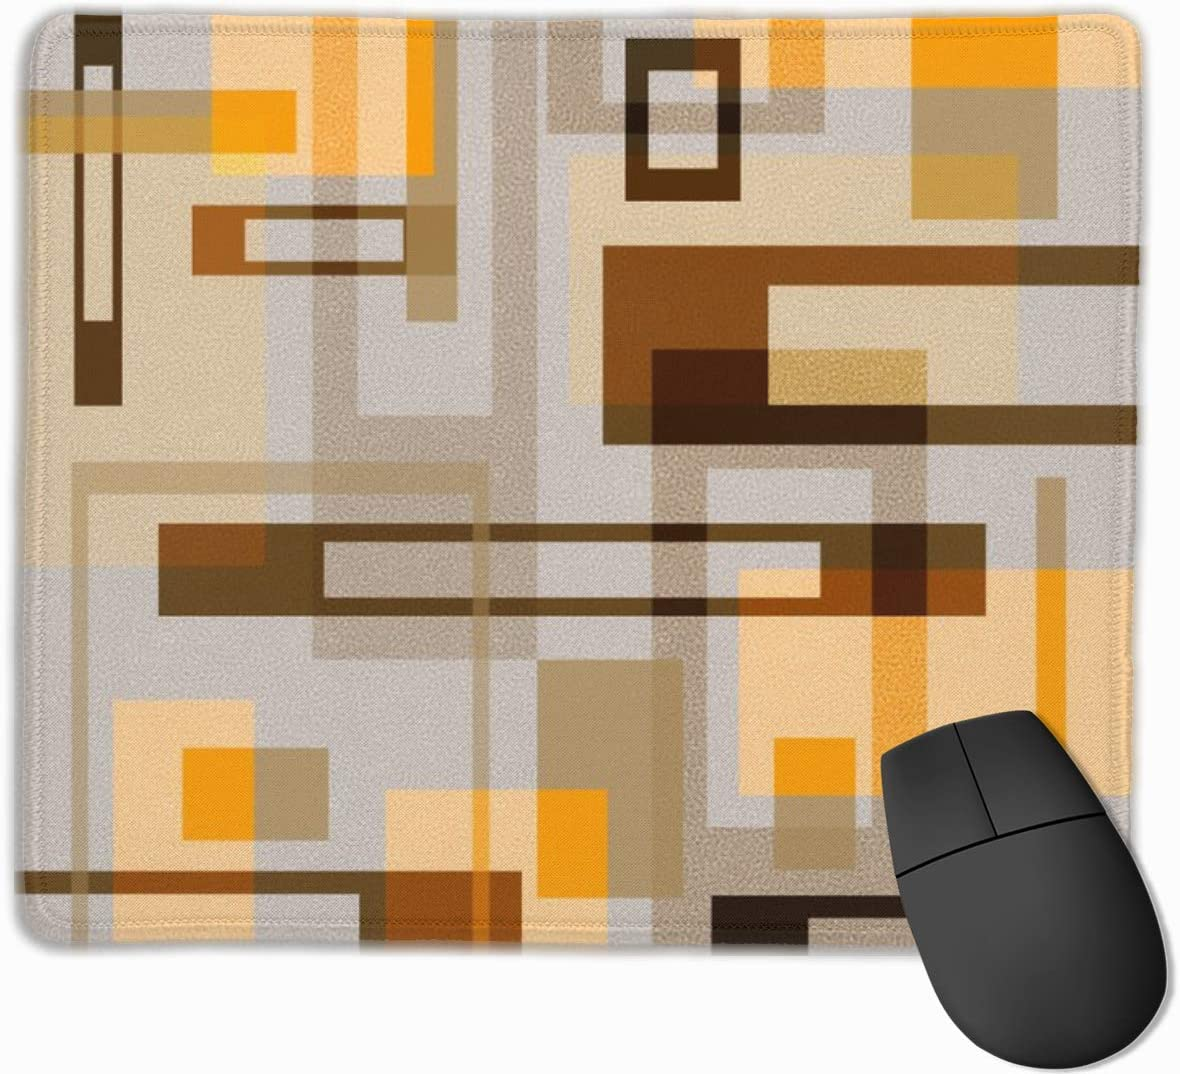 Computer PC and Laptops 9.8 X 11.8 inch Mid Century Modern Blocks on Sand Non-Slip Rubber Mouse Mat Mouse Pad for Desktops